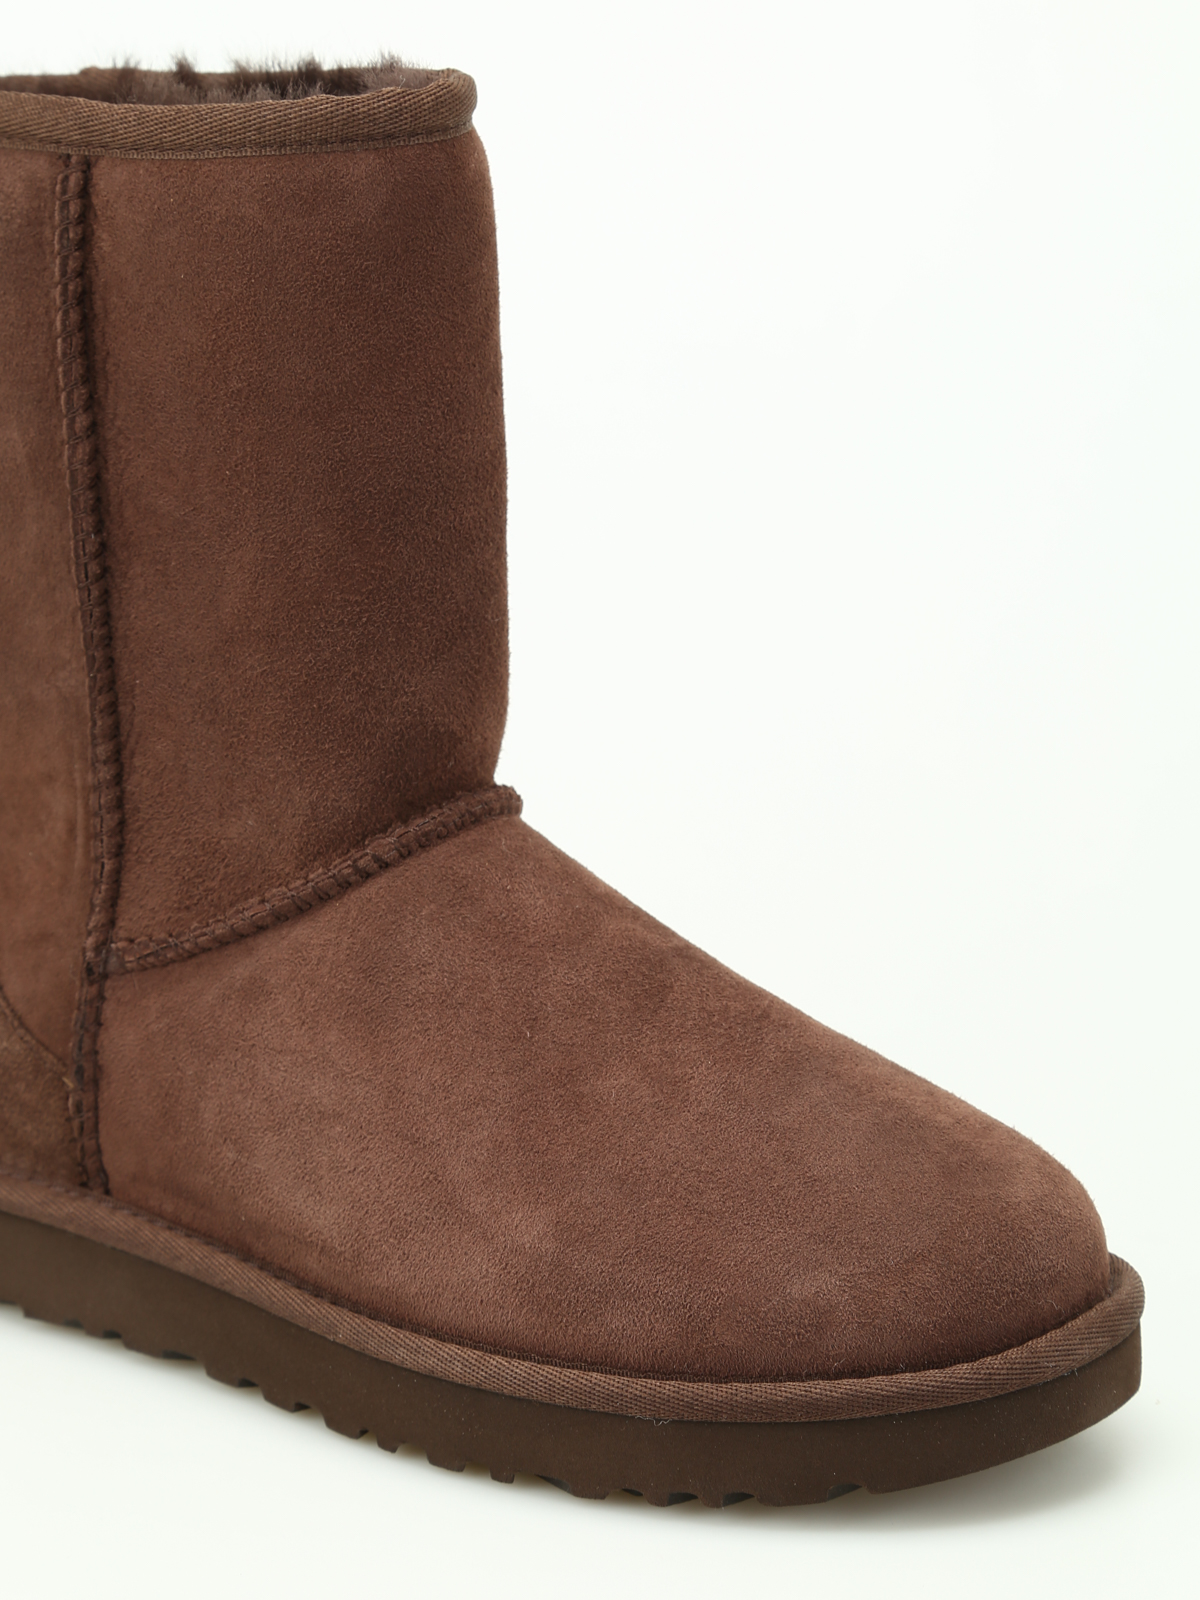 Chocolate Ankle Ugg Boots | Mindwise